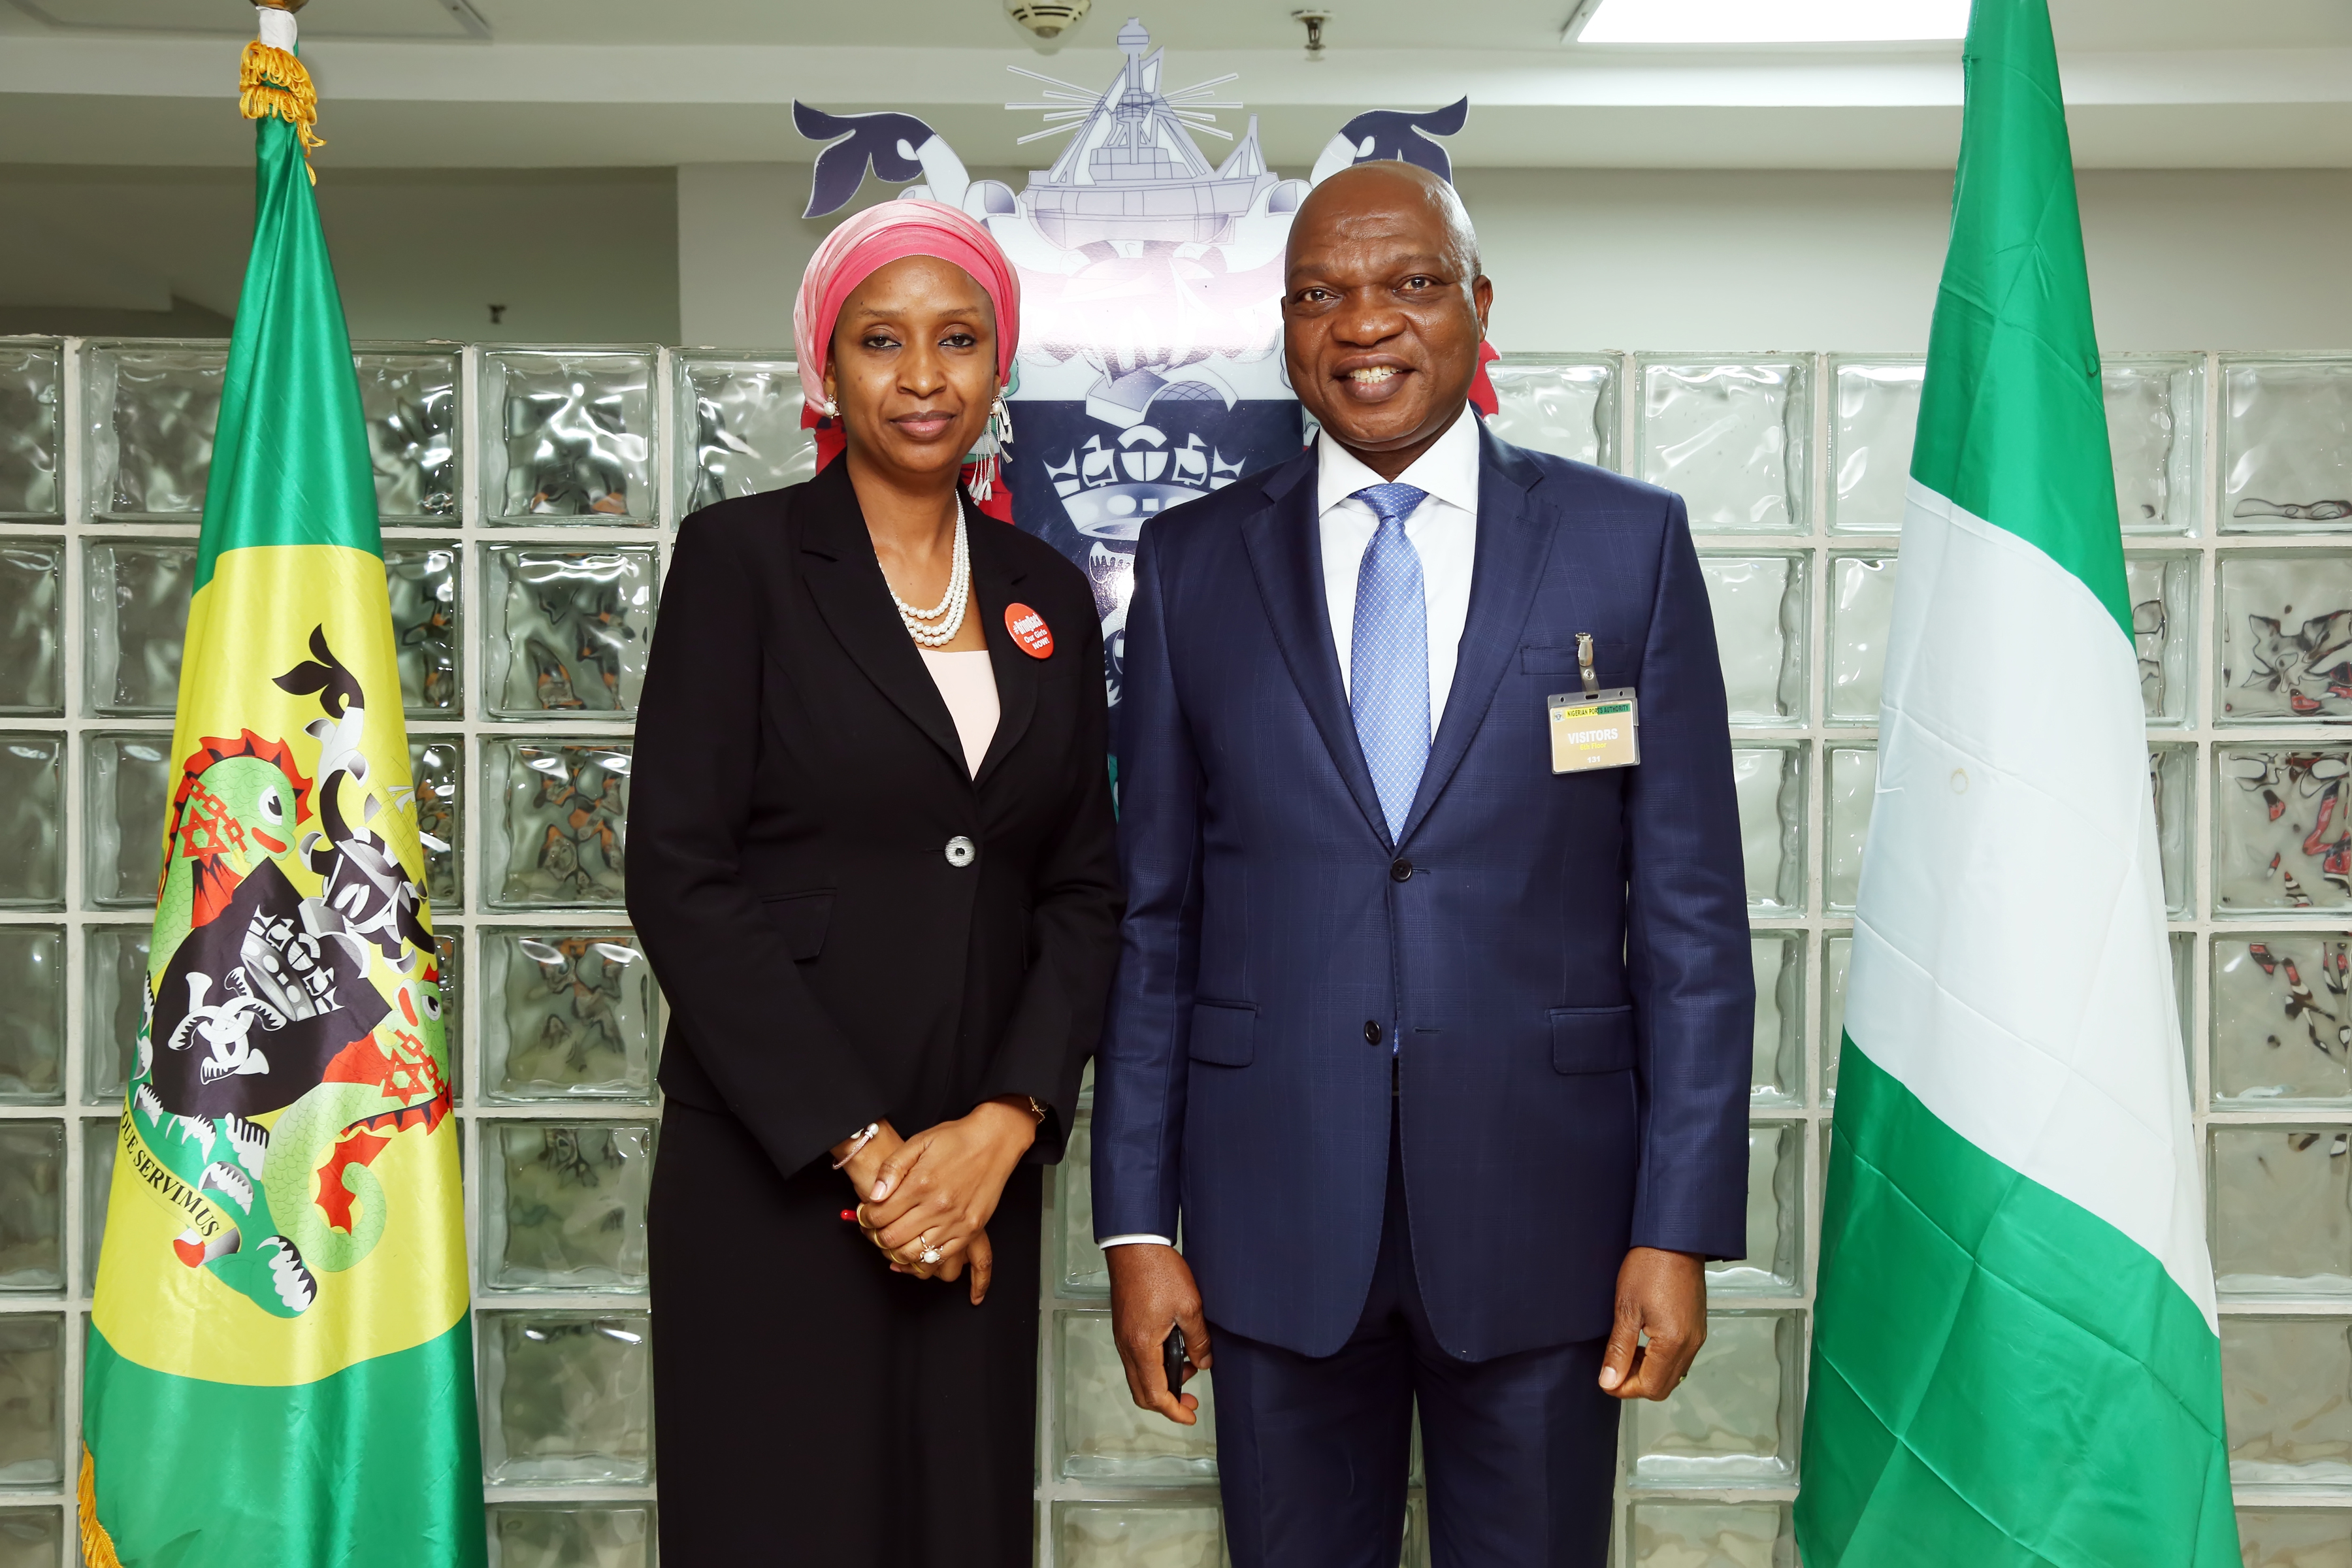 The Nigerian Ports Authority Plans synergy withthe Royal Dutch Shellaimed at the improvement of operational and efficiency